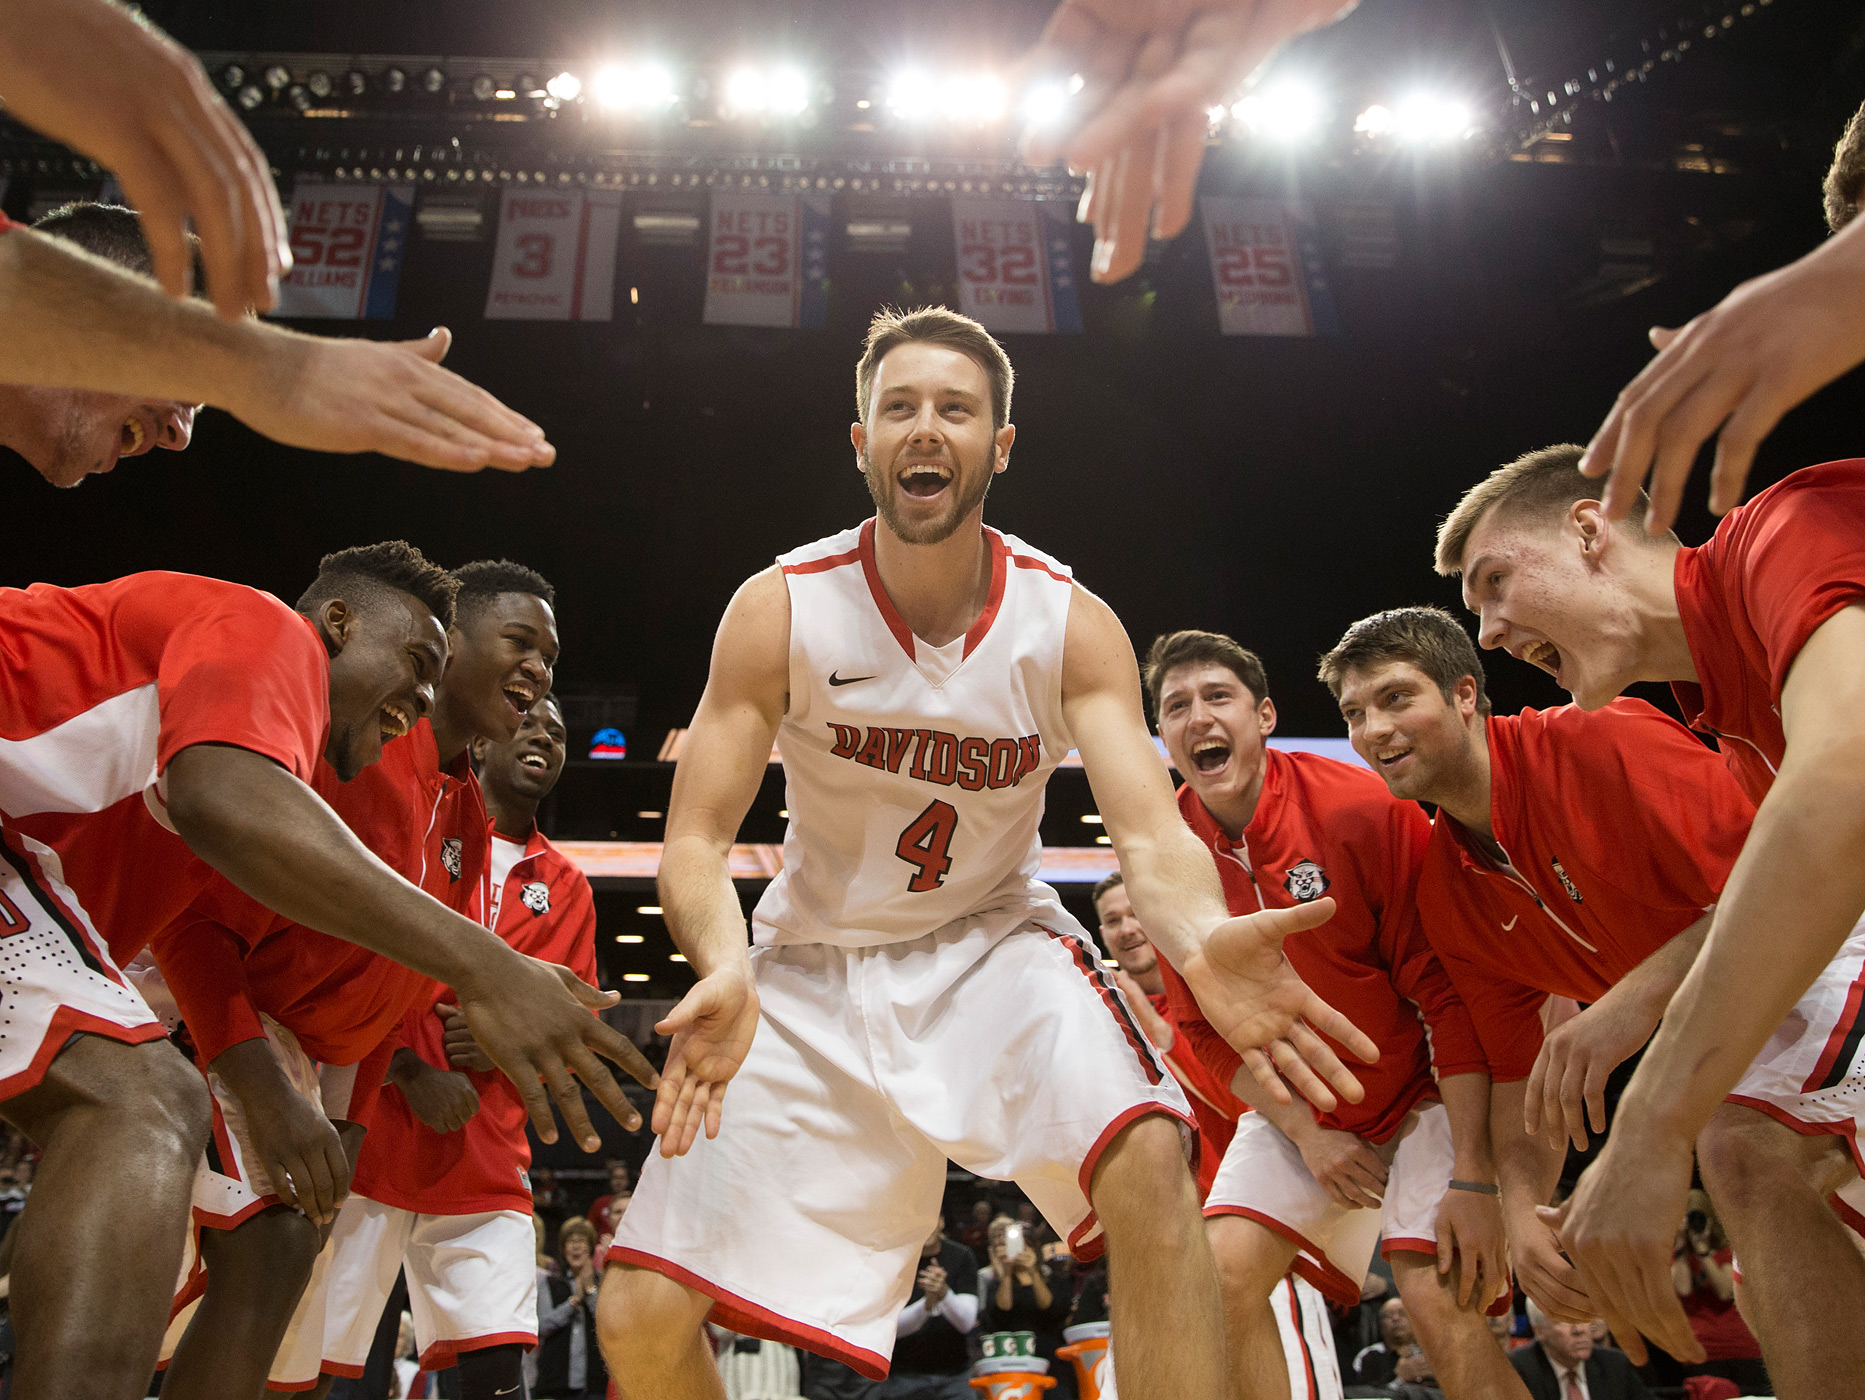 Tyler Kalinoski #4 of the Davidson Wildcats walks on the court during the introductions prior to the game against the La Salle Explorers in the quarterfinals of the men's Atlantic 10 tournament on March 13, 2015 at the Barclays Center in Brooklyn in New York City.